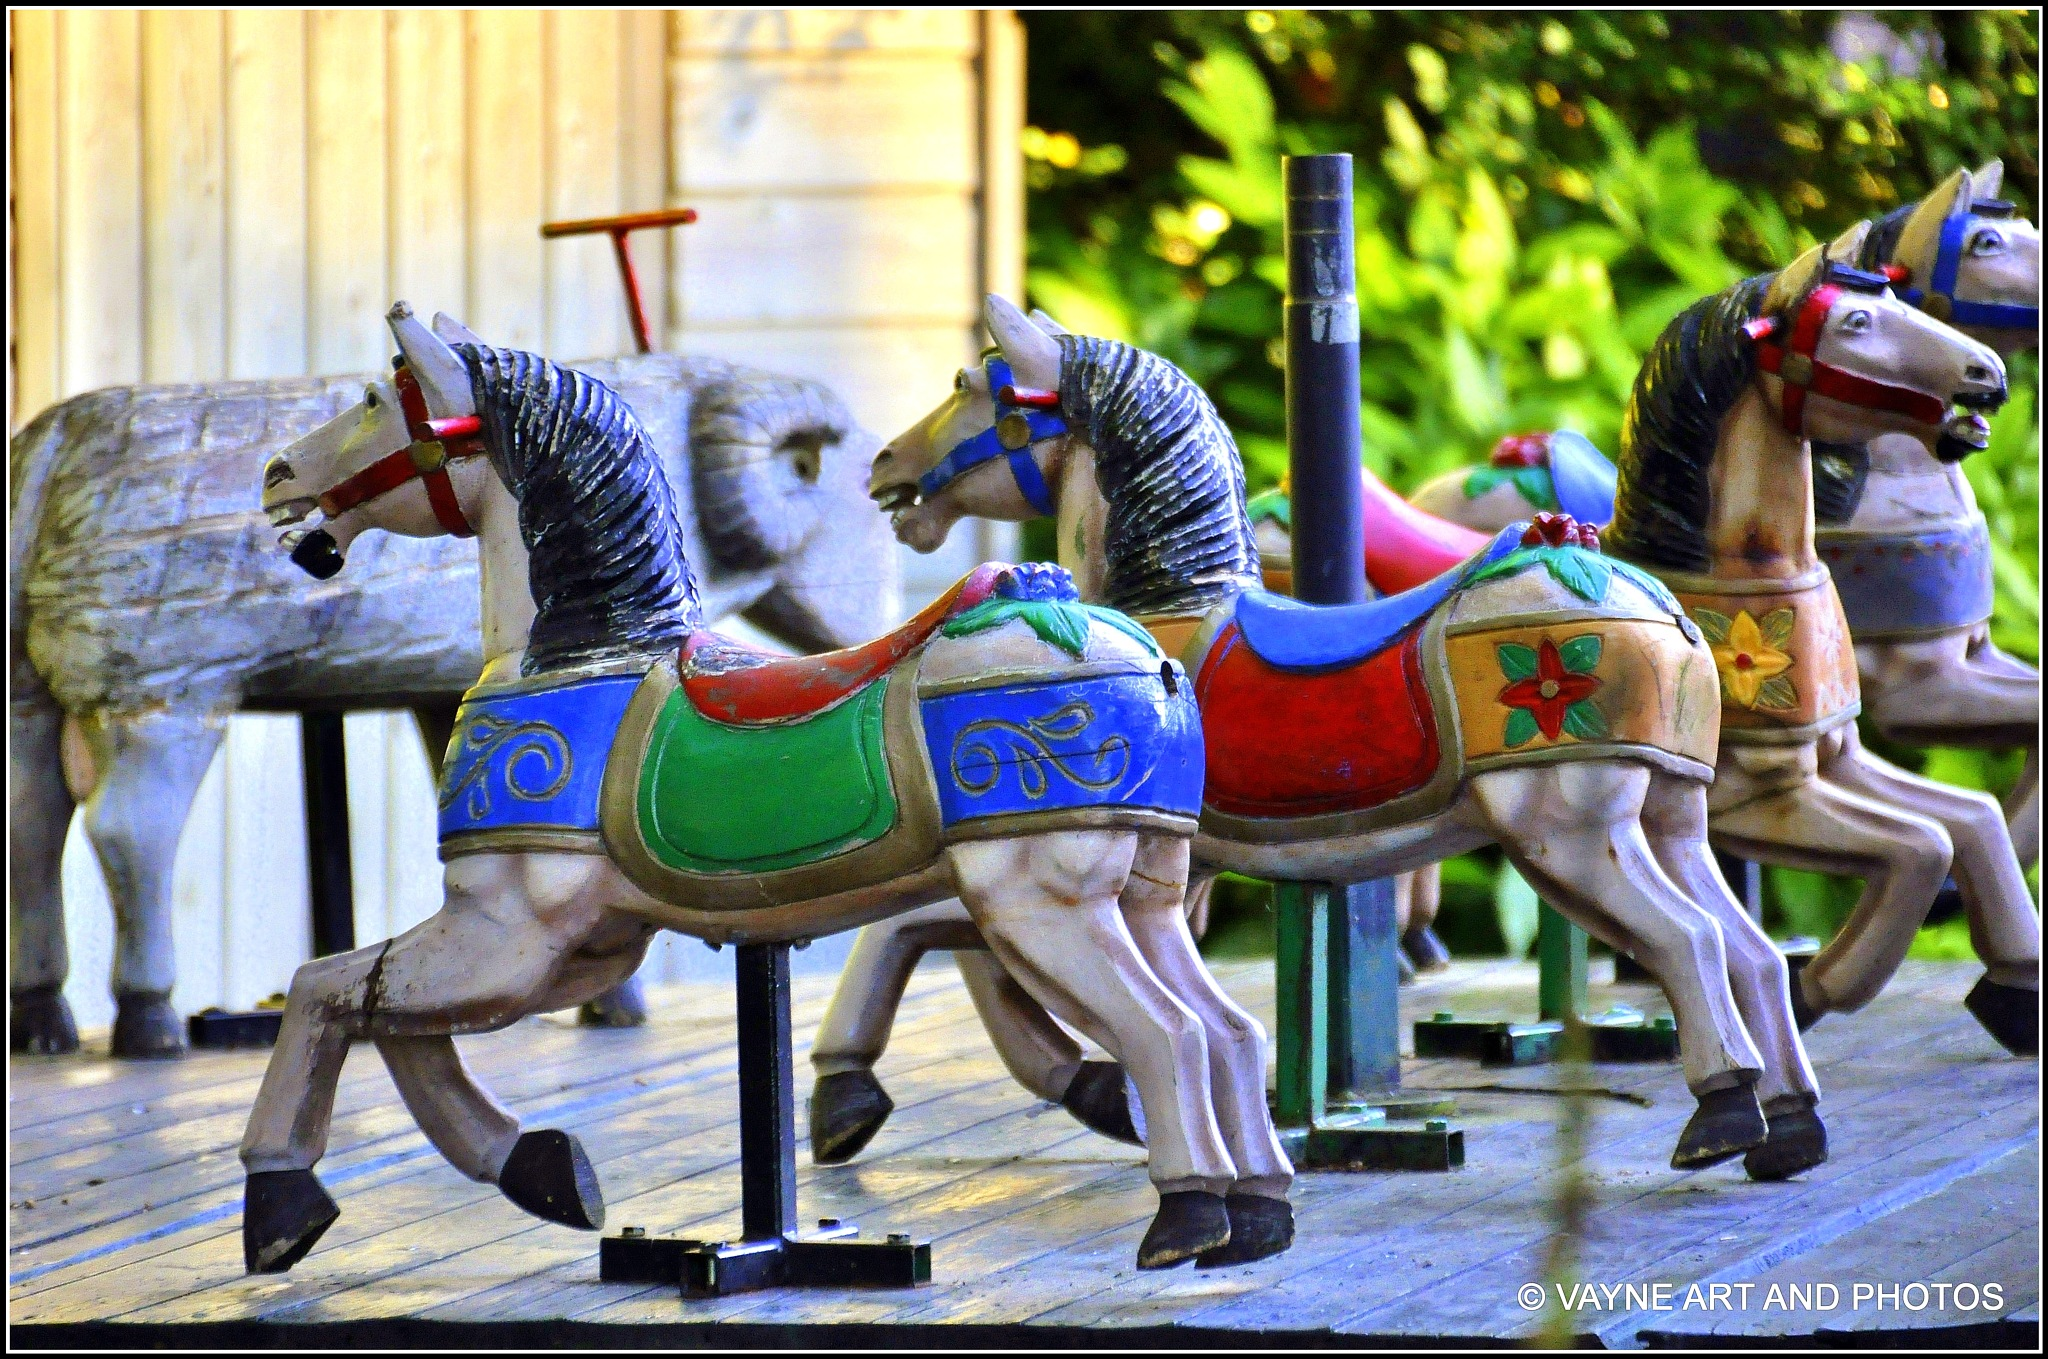 Toy horses by Jacob van der Veen